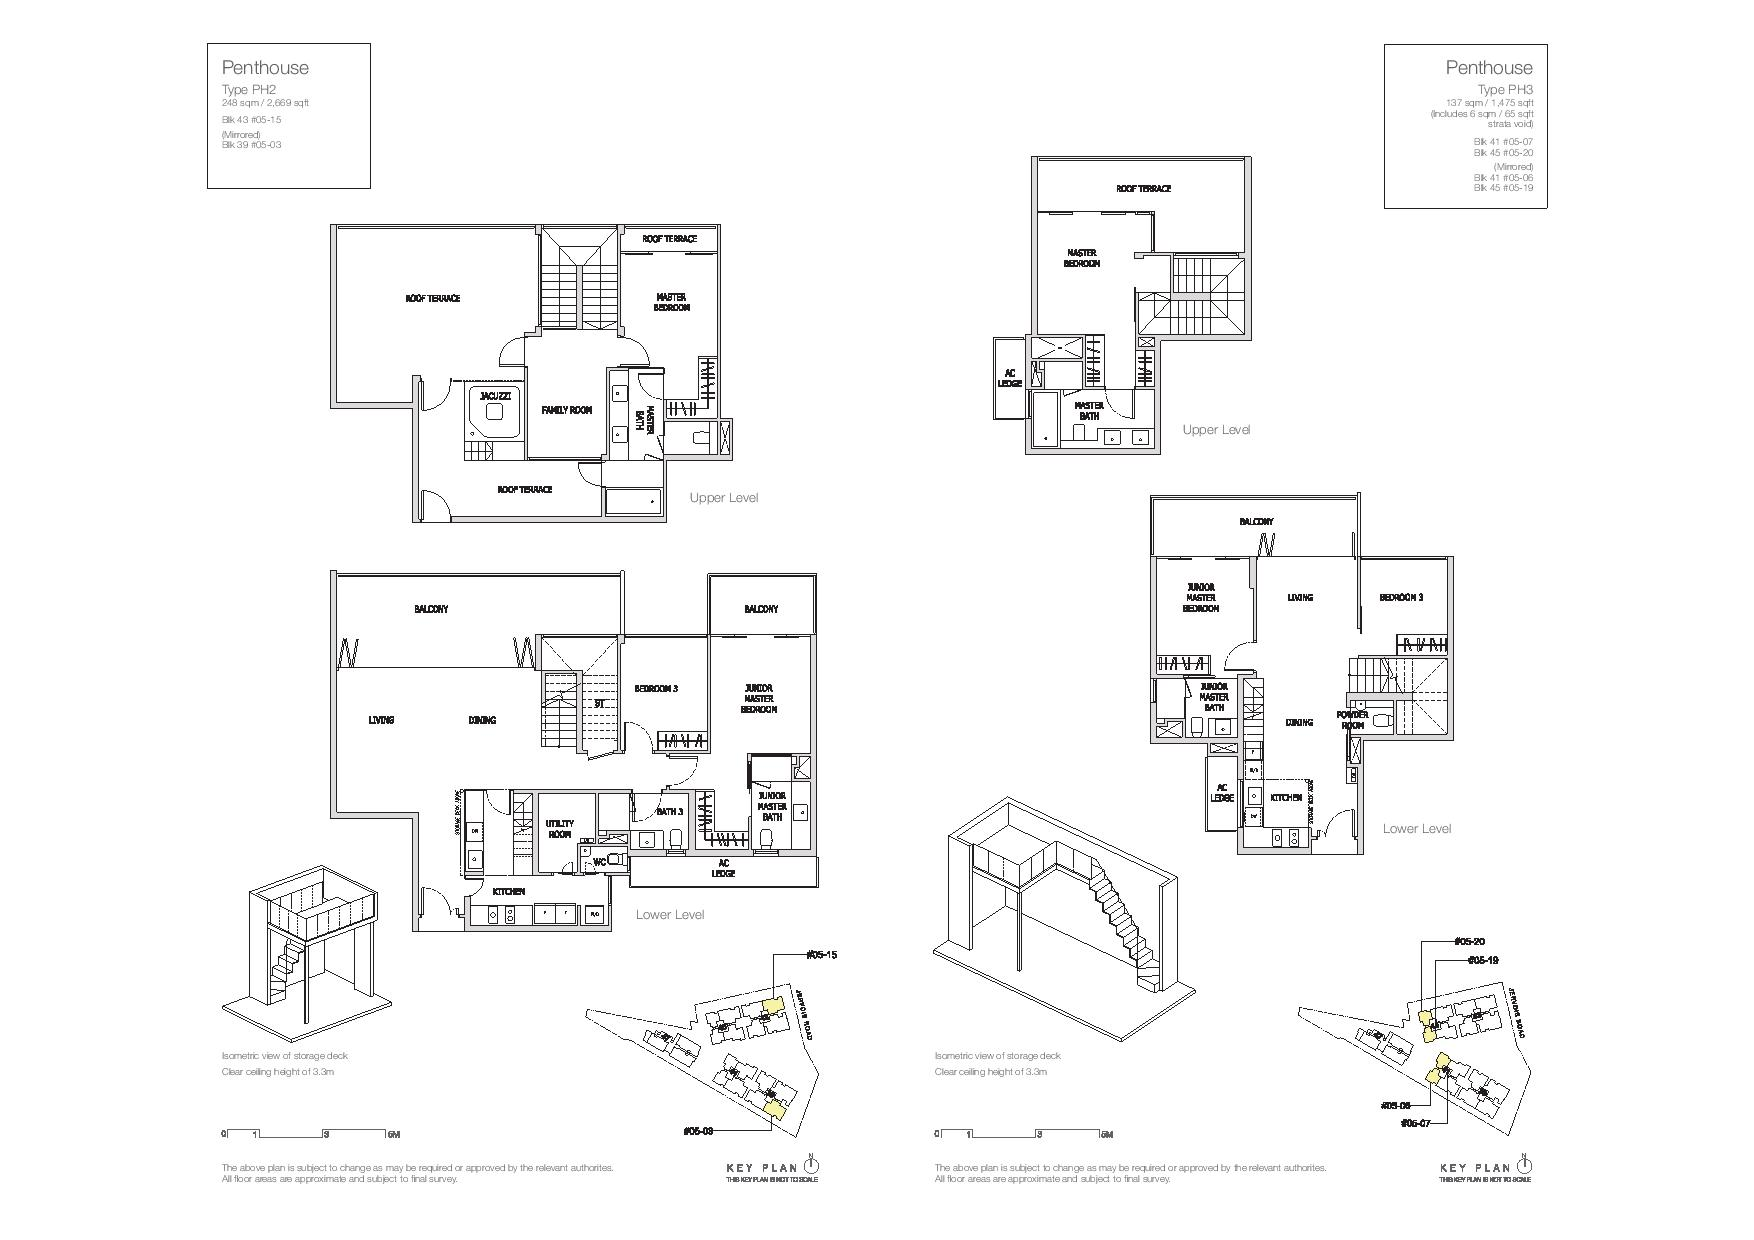 Mon Jervois Penthouse Floor Plans Type PH2, PH3